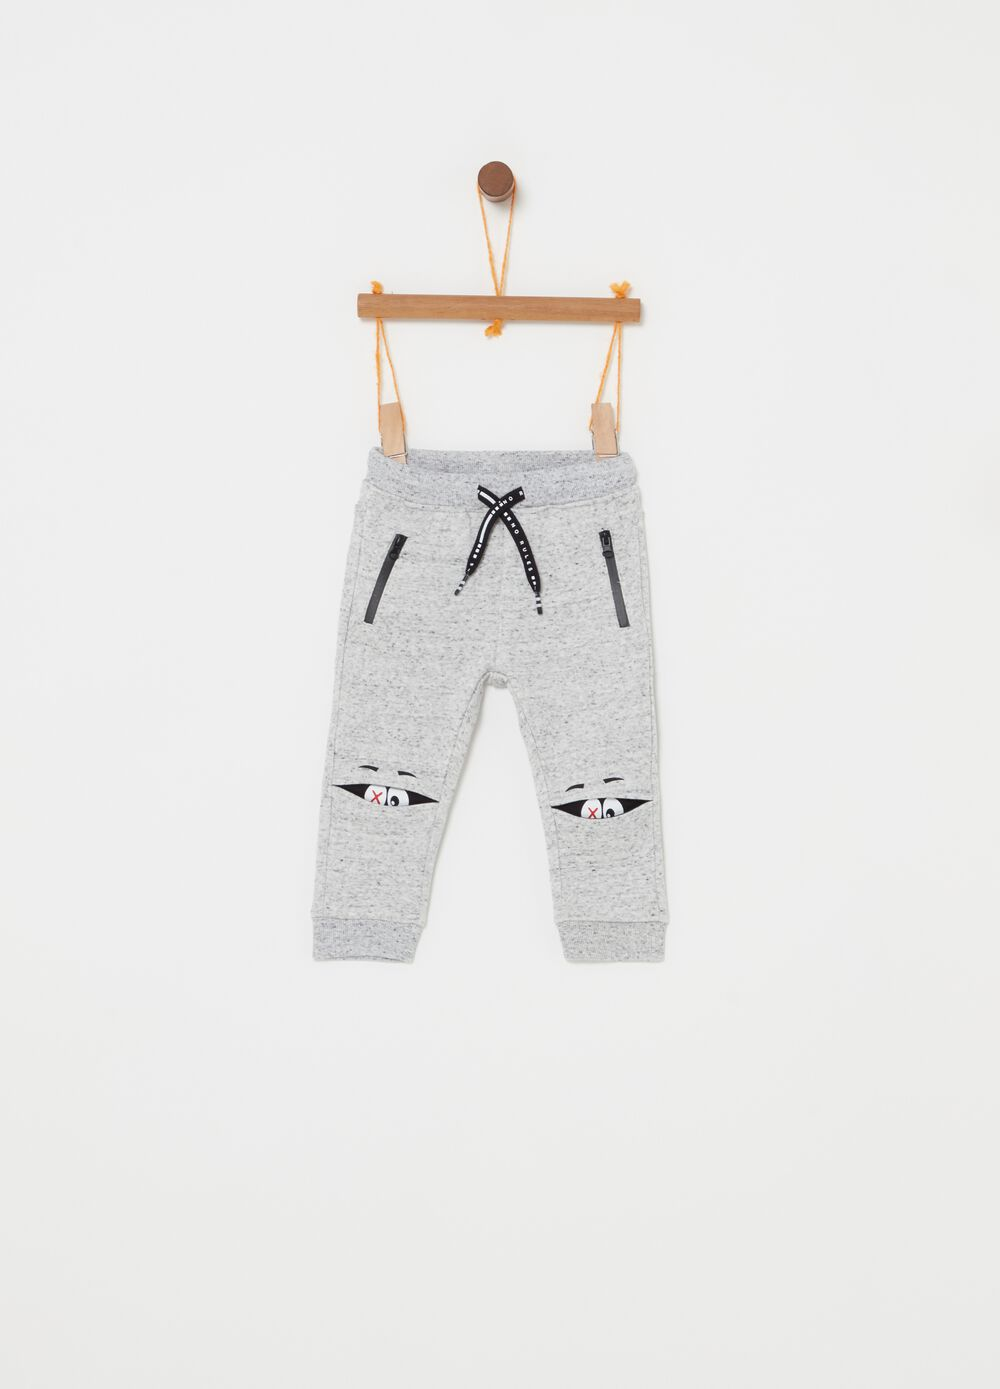 Mélange trousers with pockets, zip and print